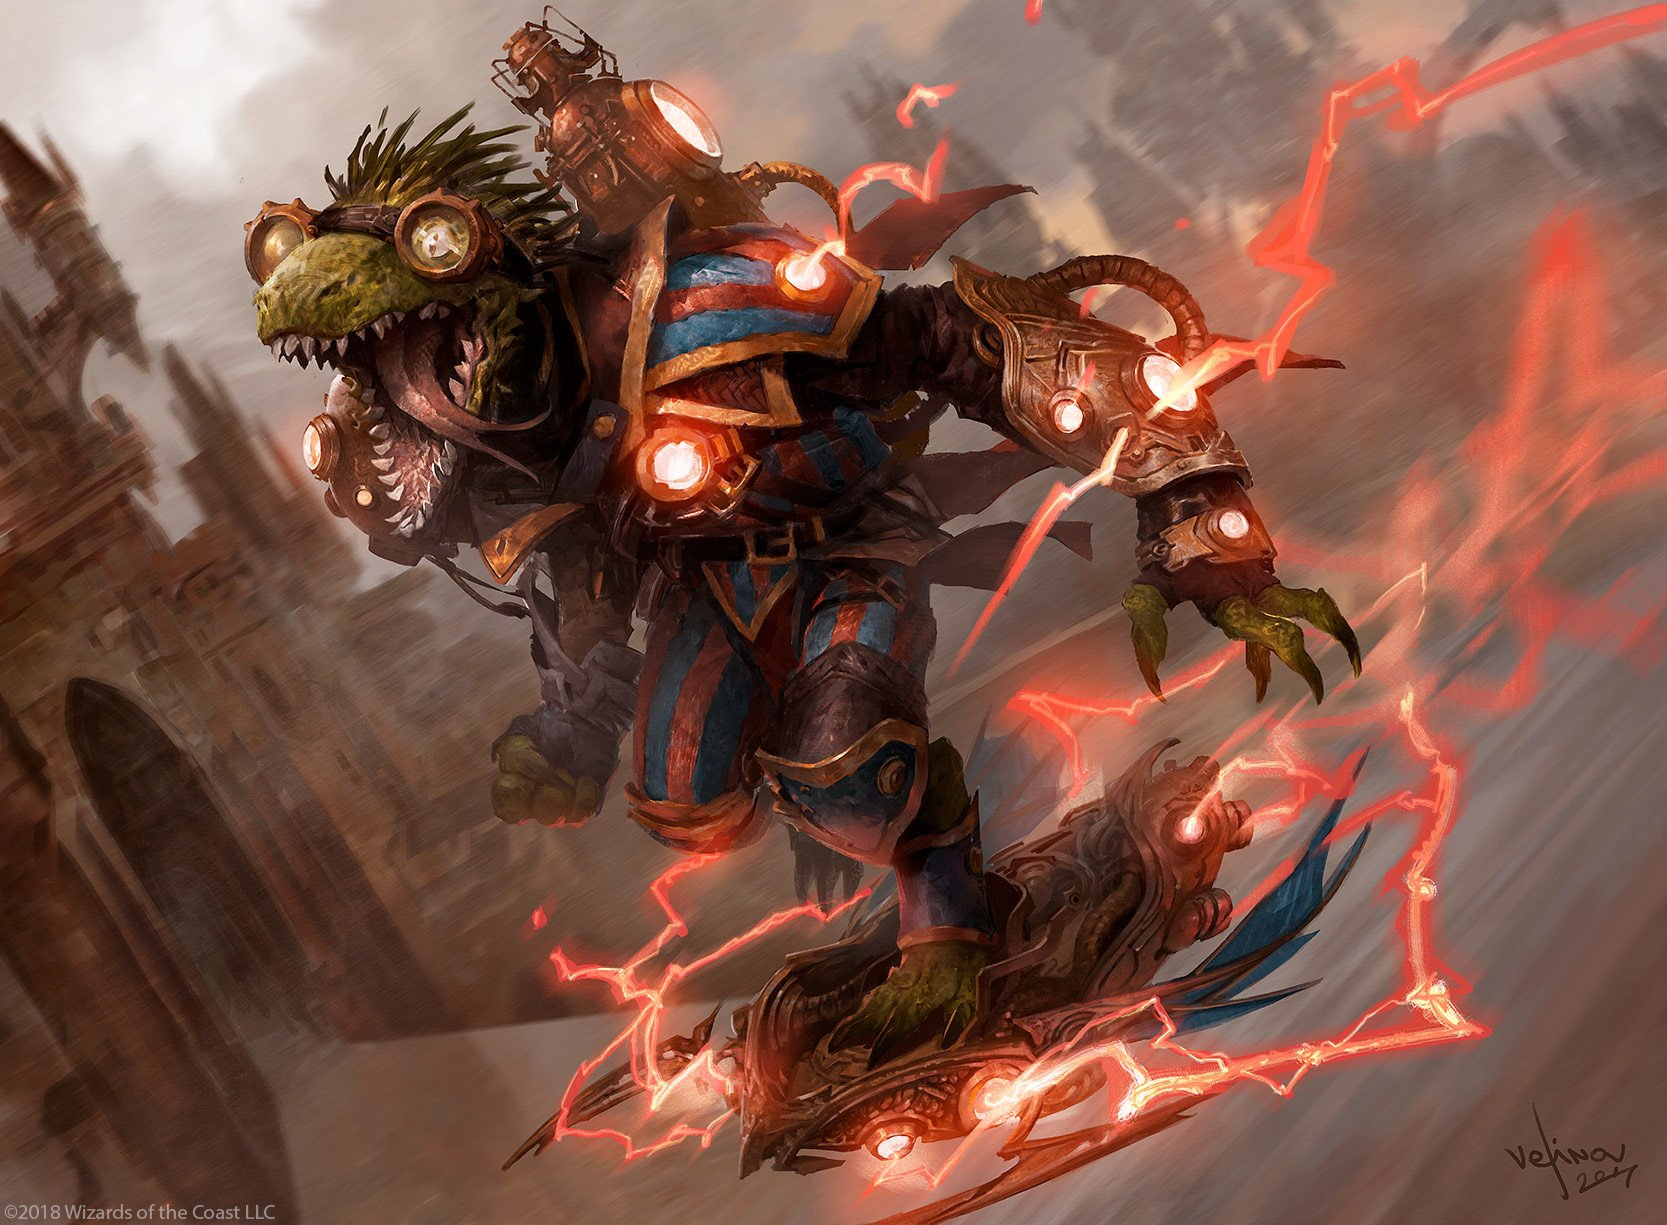 Tasha's Cauldron Of Everything: The Armorer Artificer Receives Final Print In Wizards Of The Coast's Newest Rules Expansion